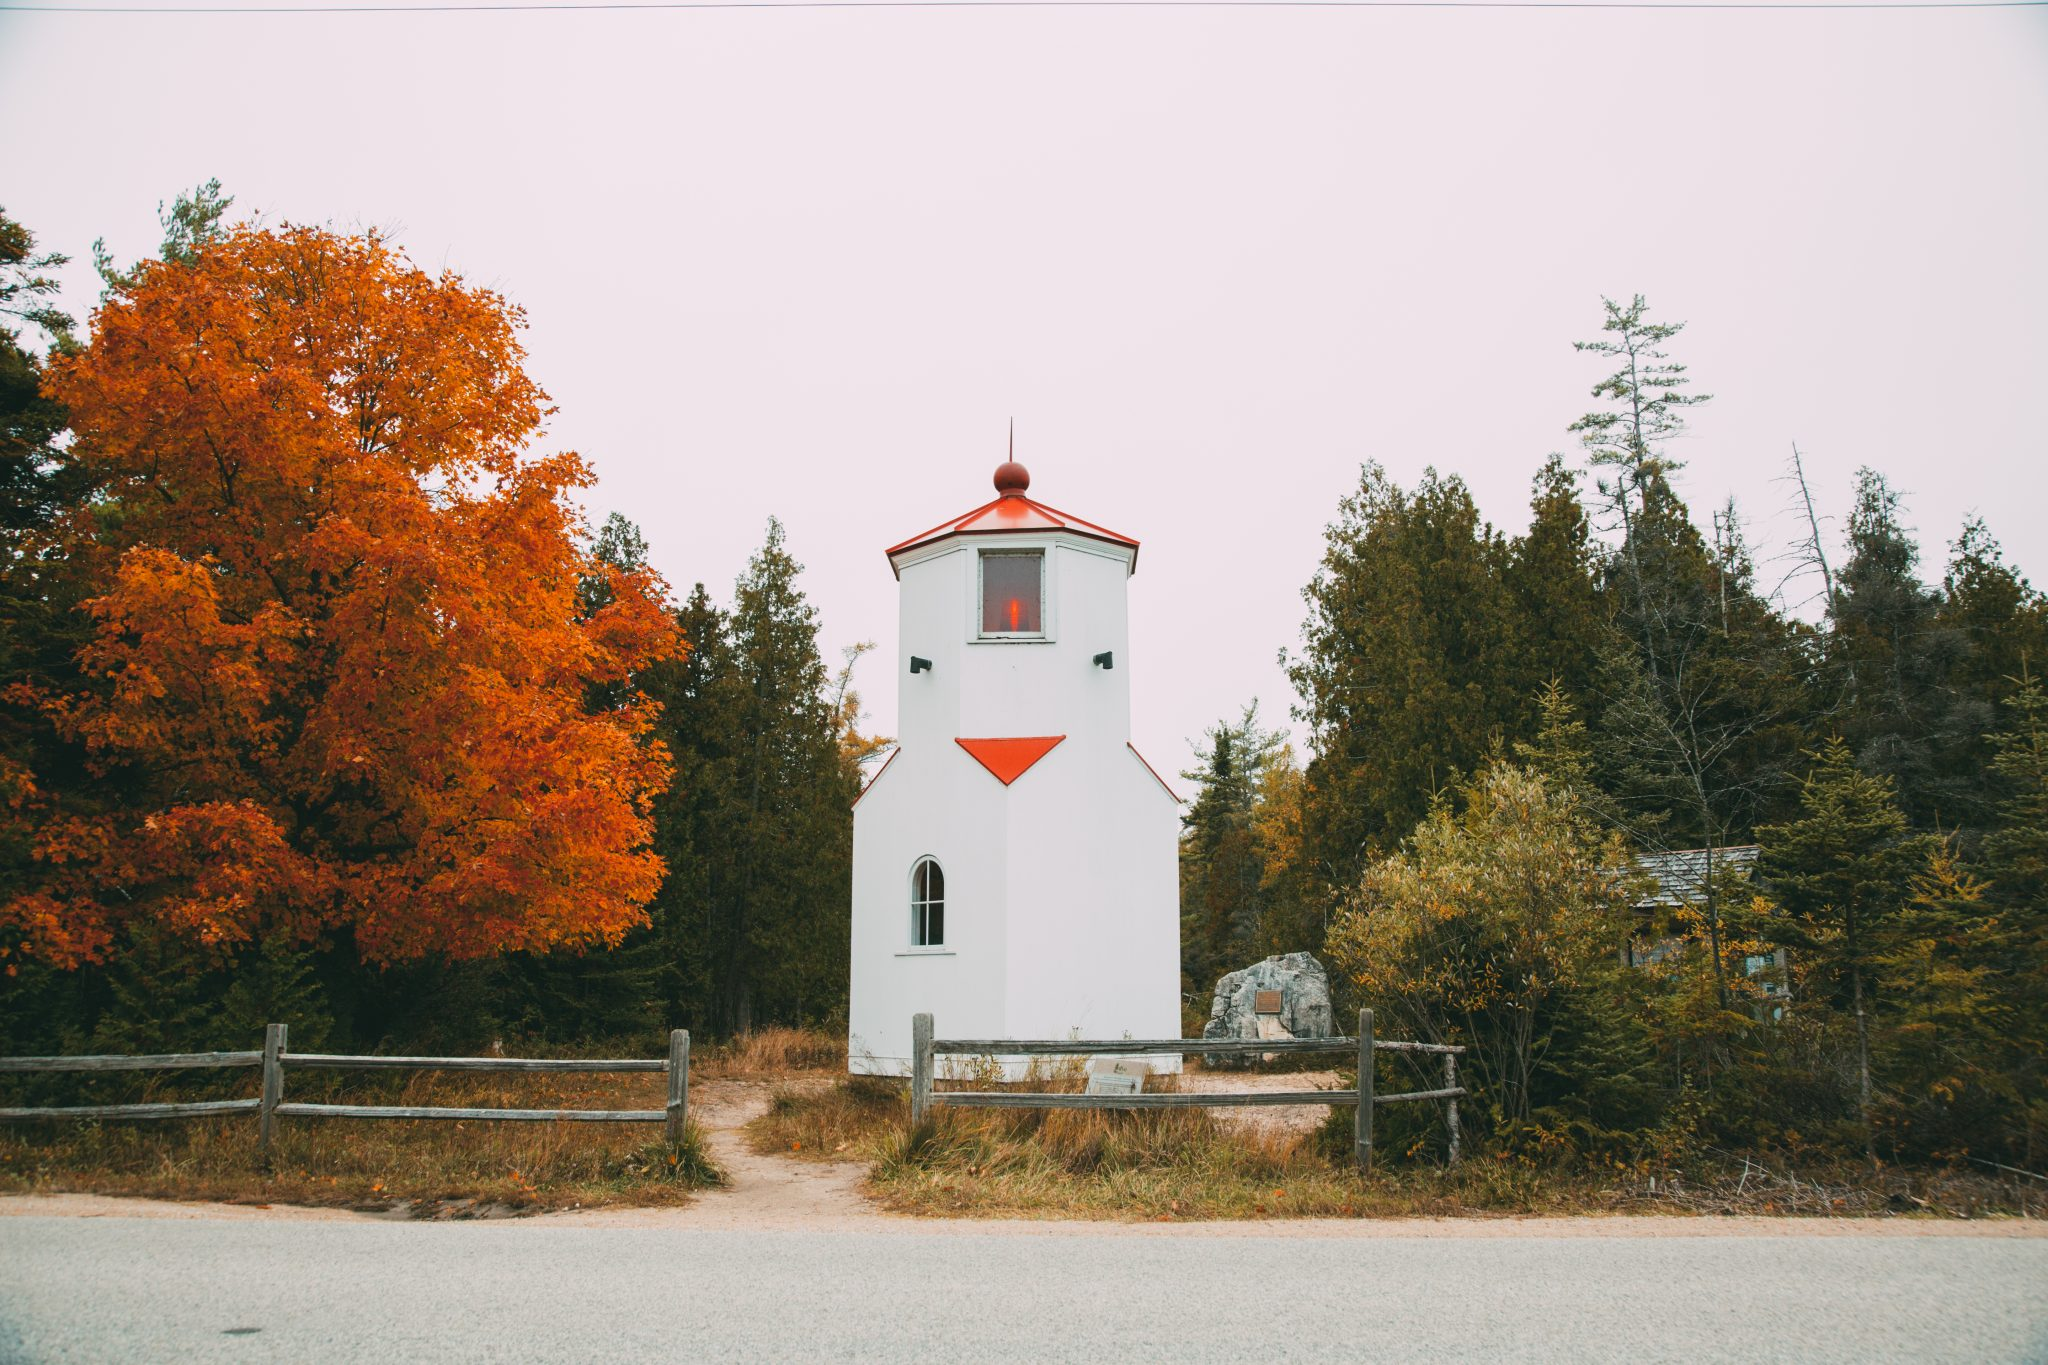 The Ridges Sanctuary lighthouse in Baileys Harbor